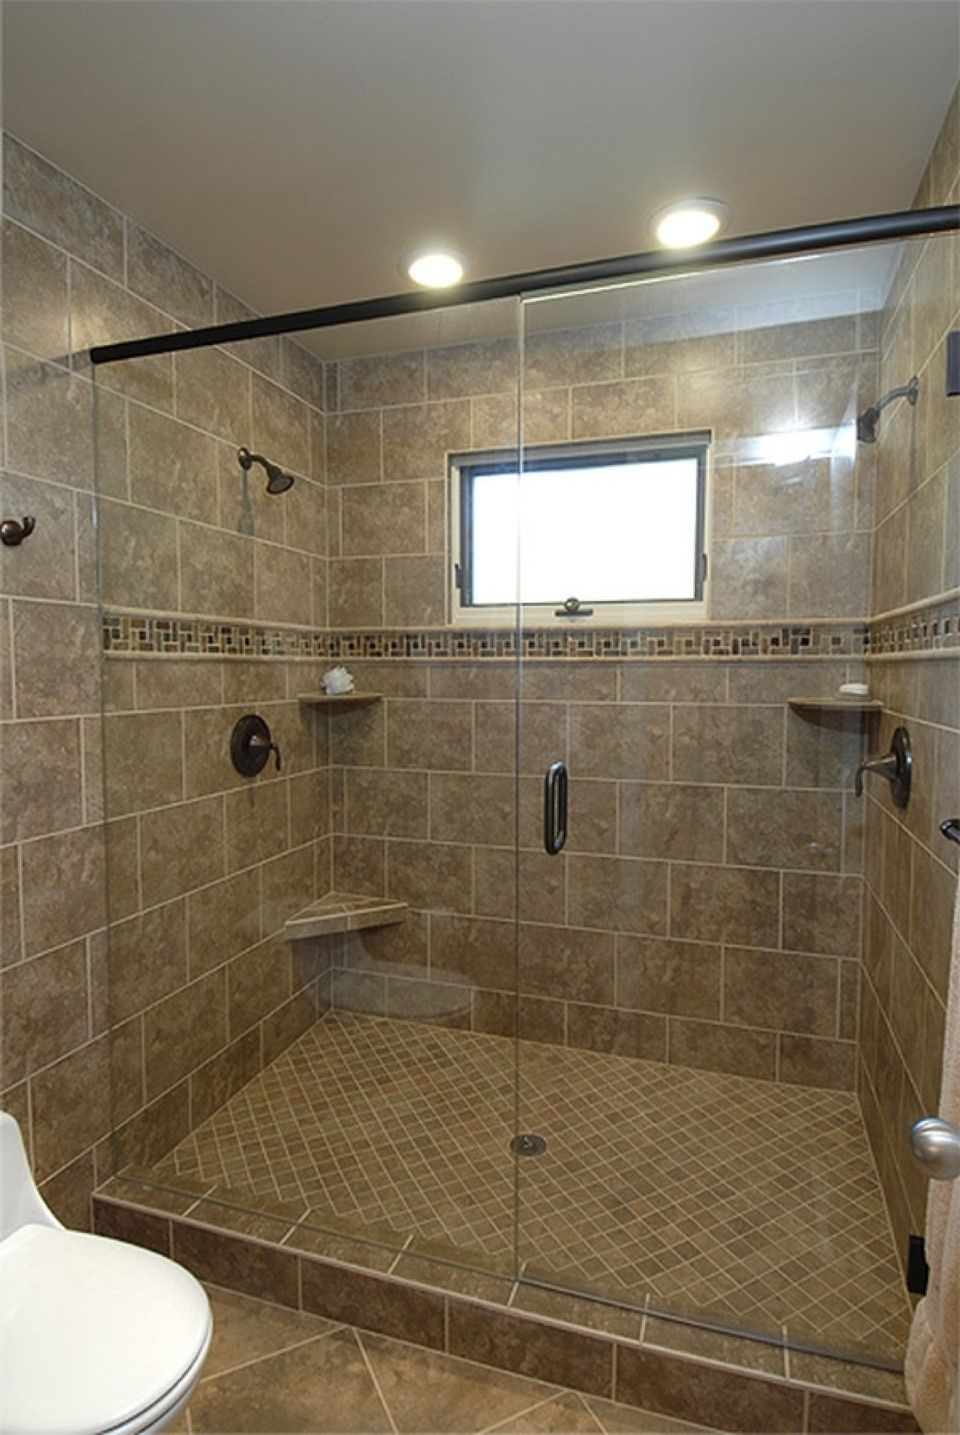 Showers with bullnose around window google search for Pictures of bathroom tile designs